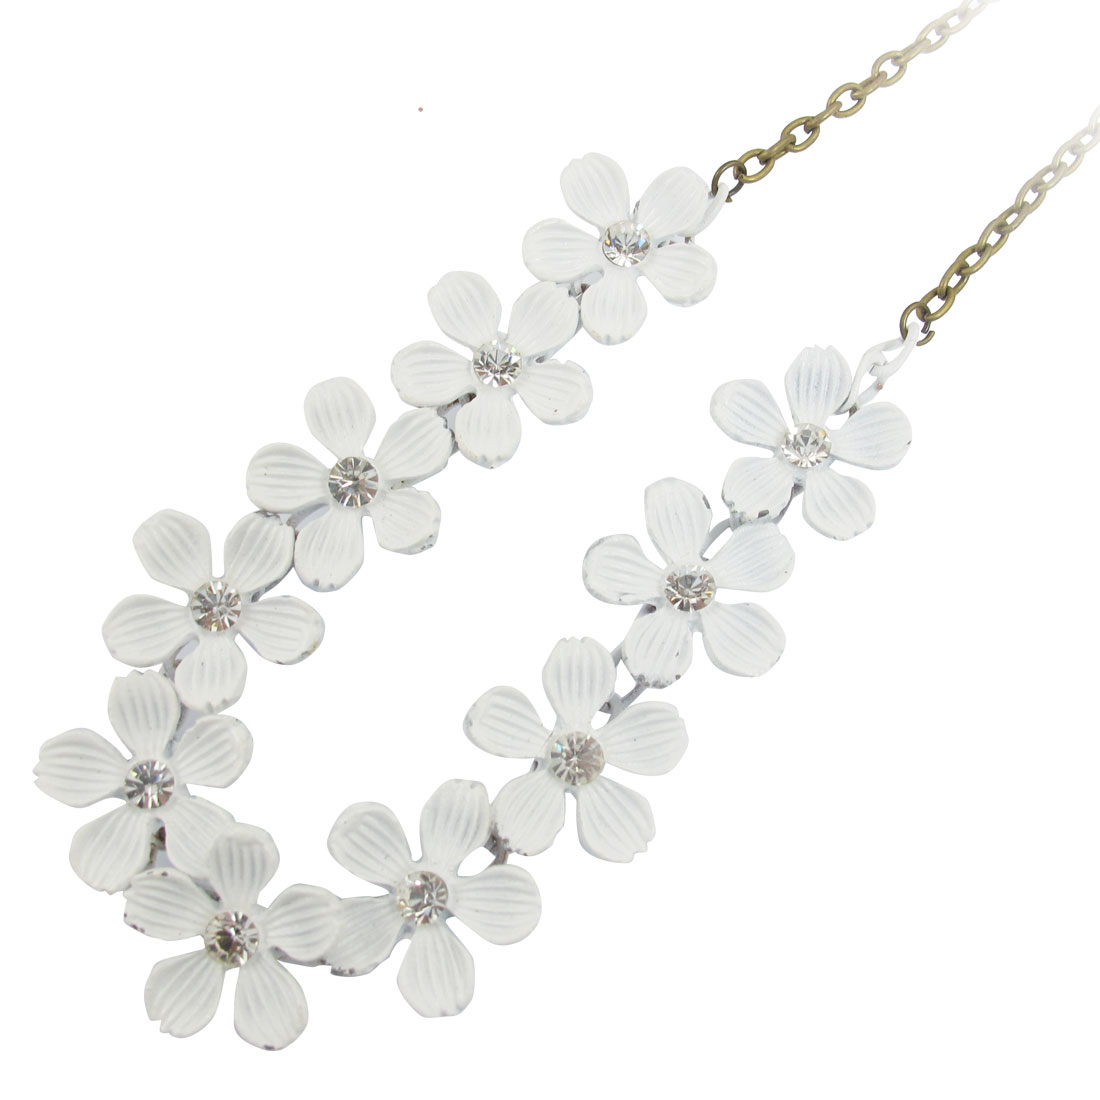 White Flowers Pendant Bronze Tone Metal Necklace for Woman